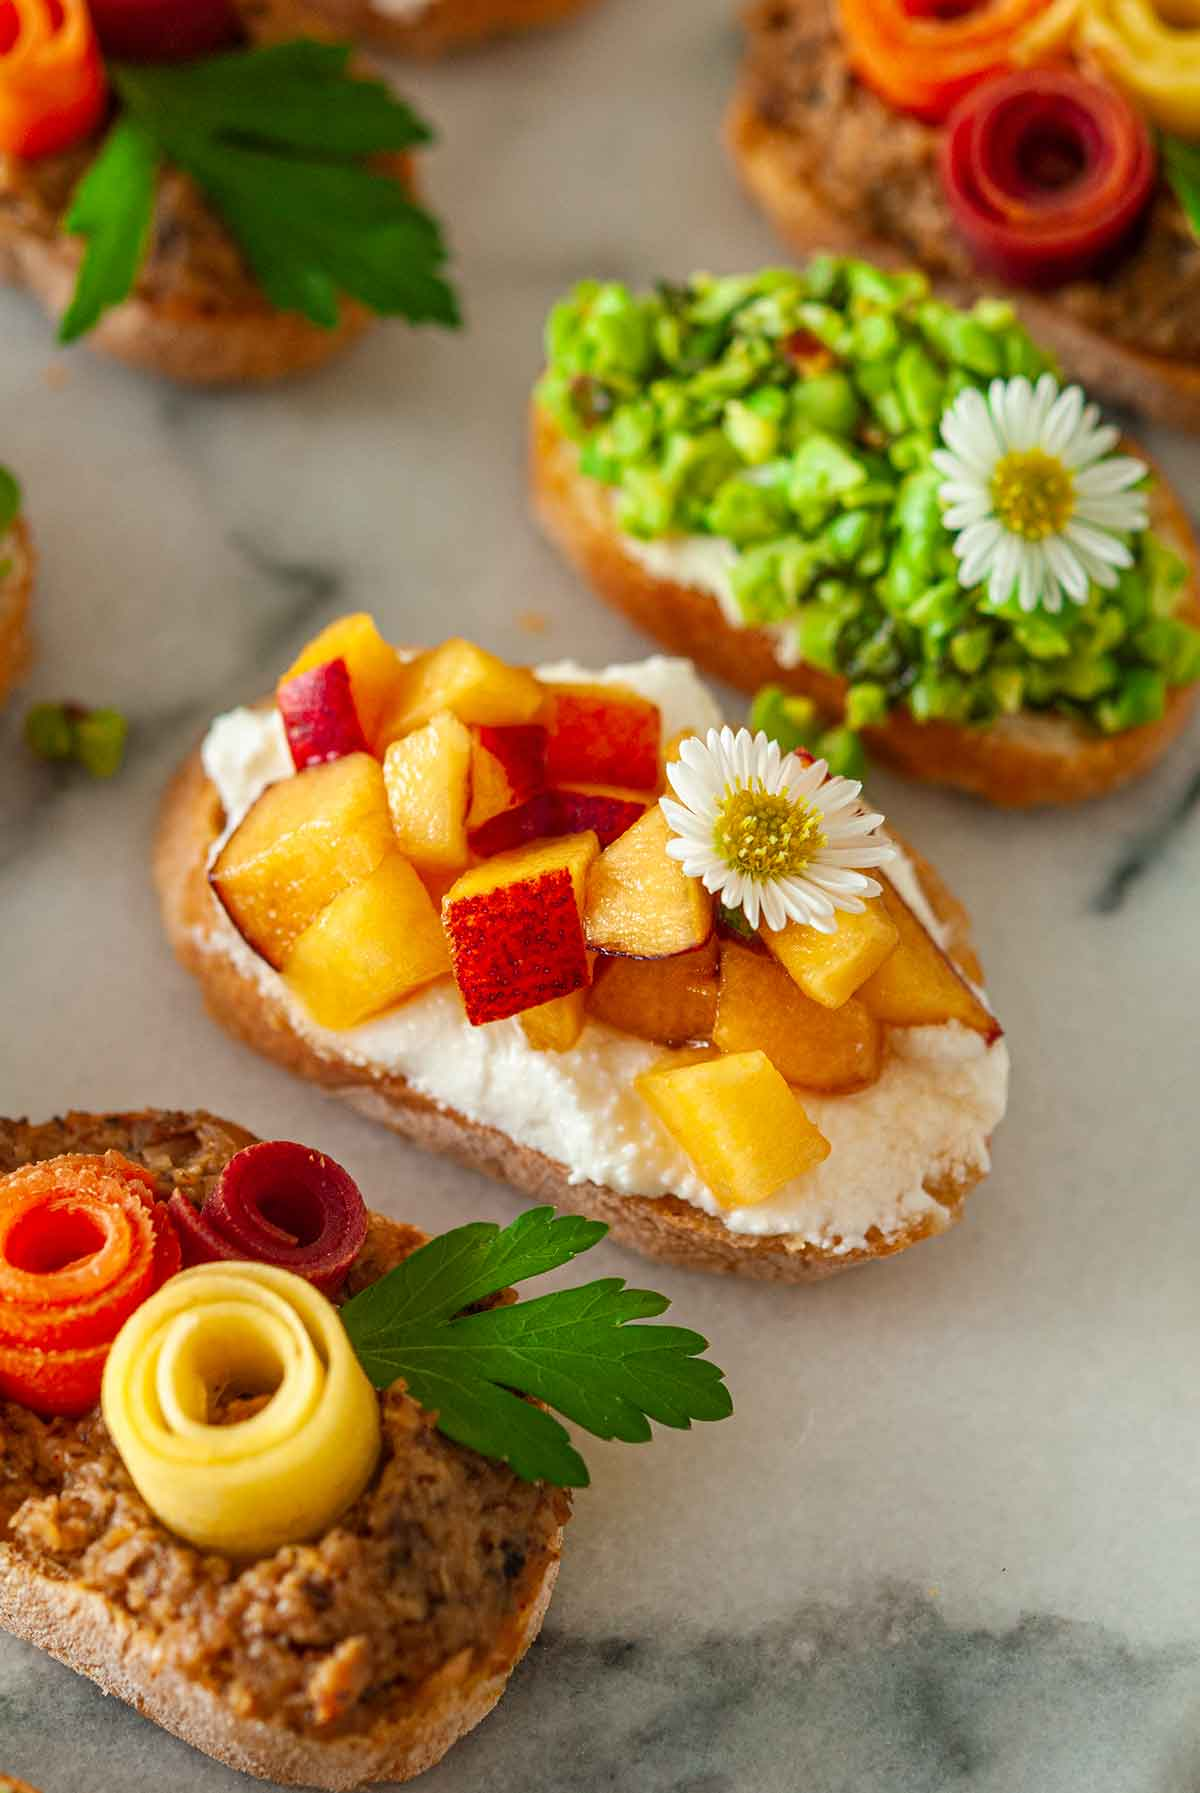 5 brightly colored crostini on a plate, with a peach crostini in the center.